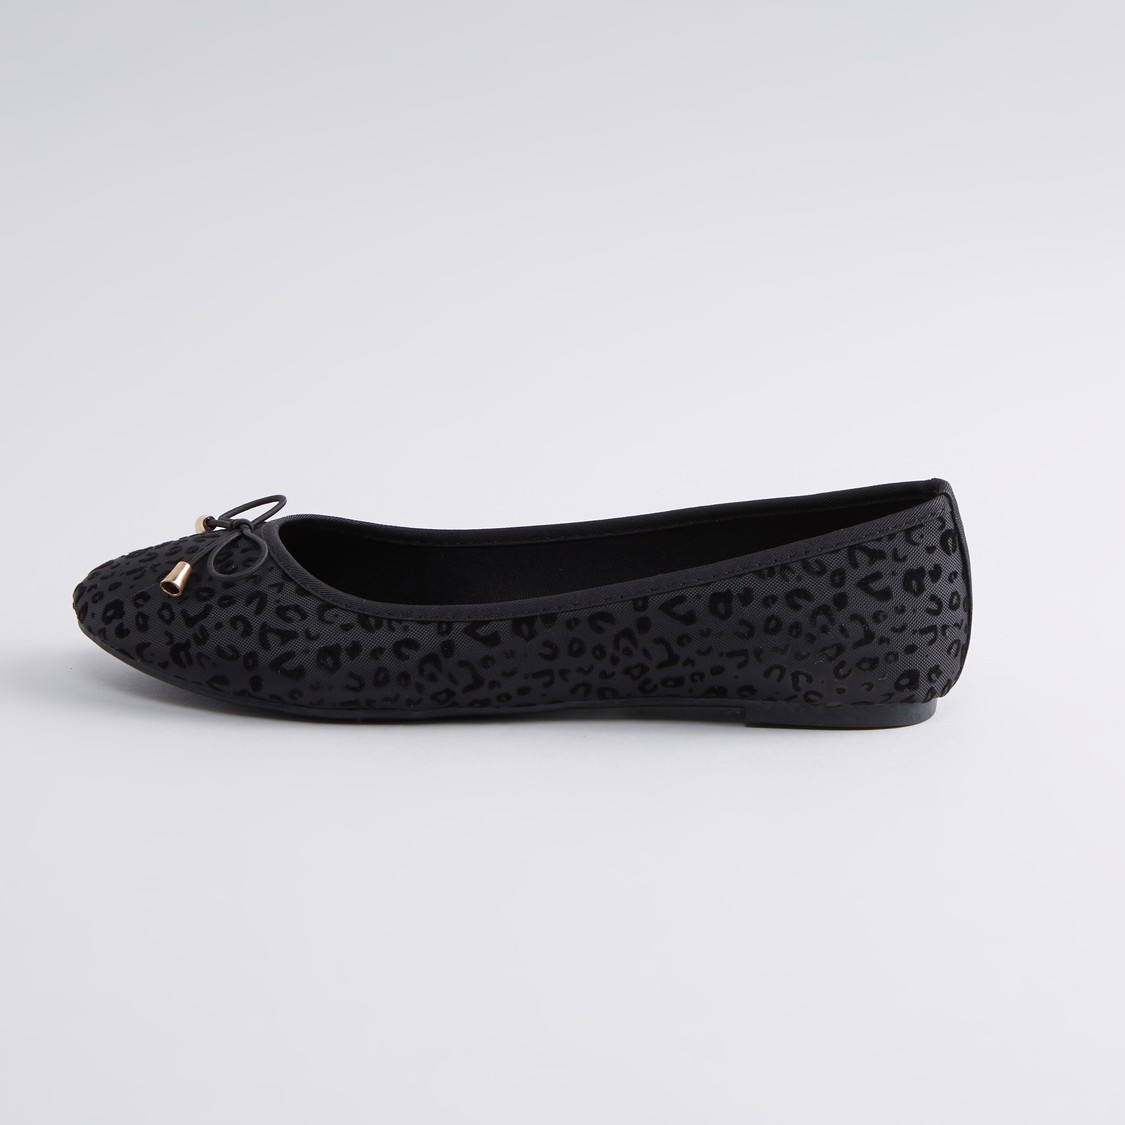 Printed Ballerina Shoes with Bow Applique